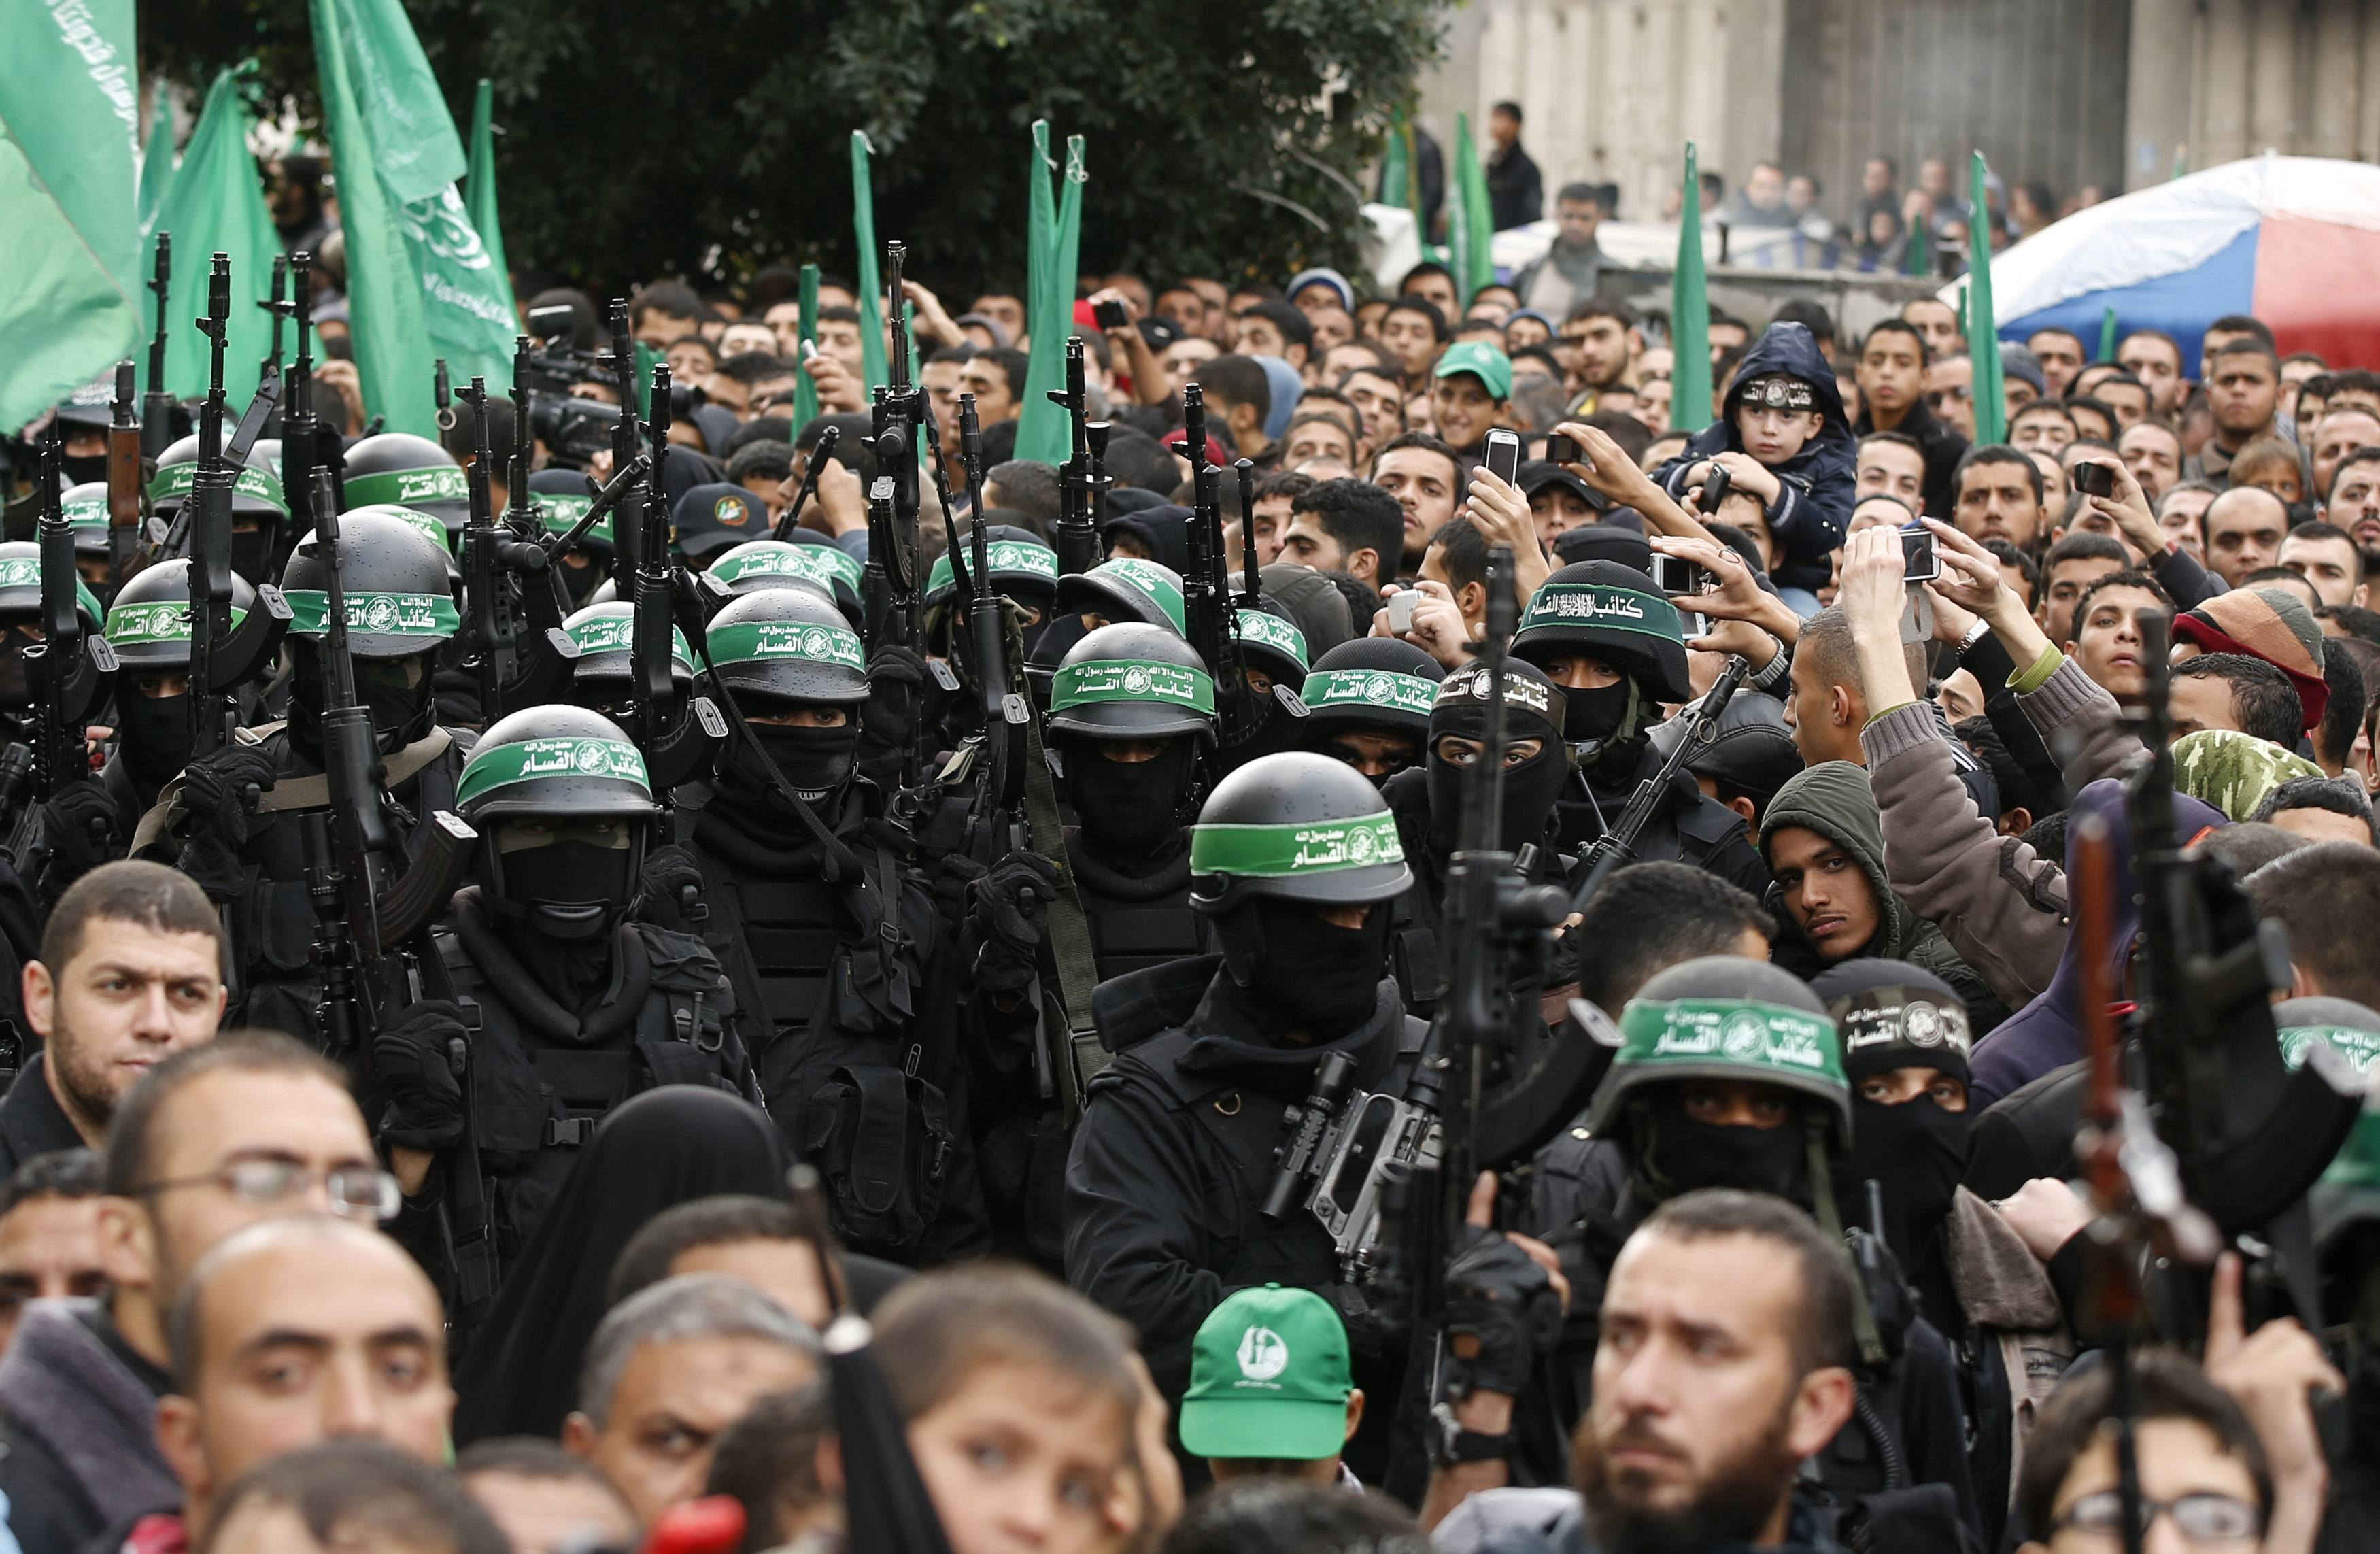 People watch as Palestinian members of al-Qassam Brigades, the armed wing of the Hamas movement, take part in a military parade marking the 27th anniversary of Hamas' founding, in Gaza City December 14, 2014.  REUTERS/Mohammed Salem